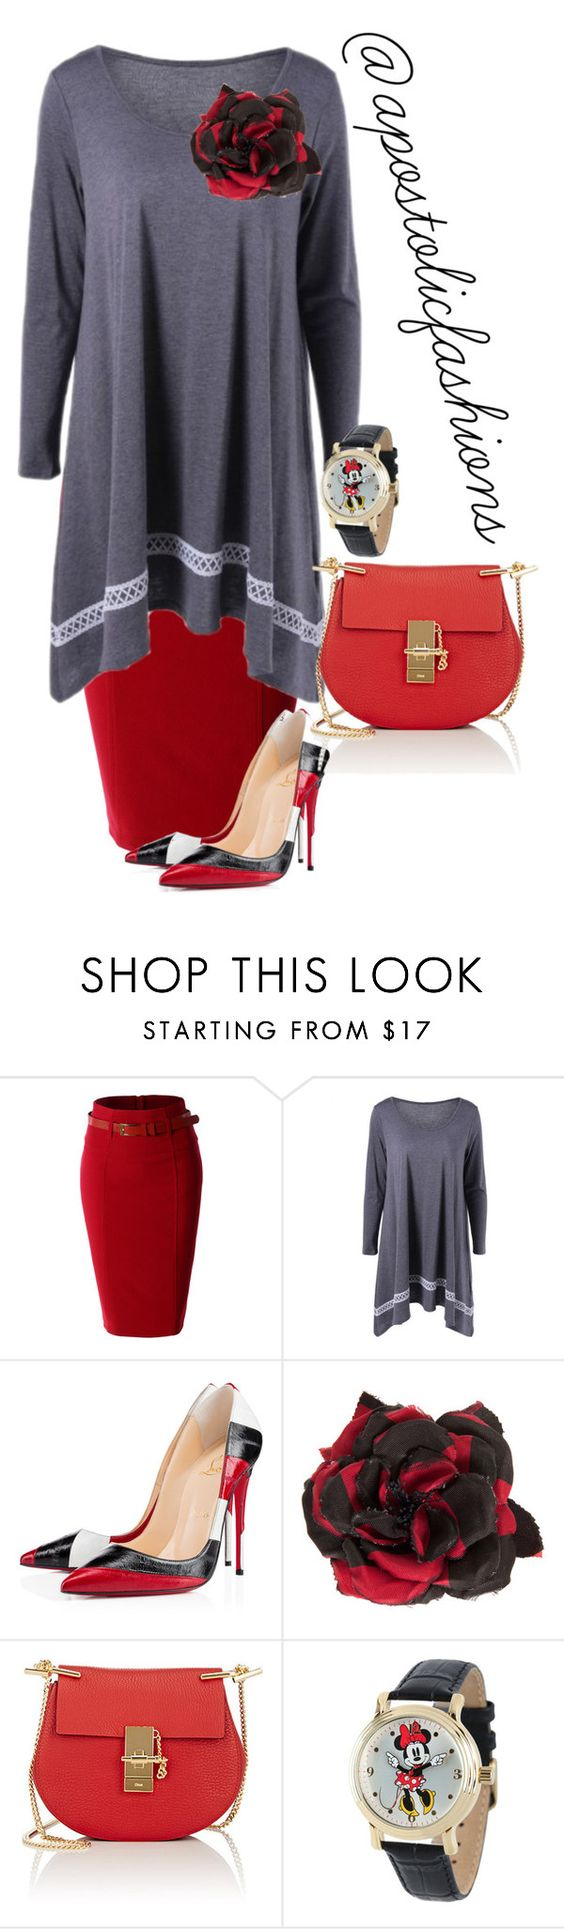 """""""Apostolic Fashions #1471"""" by apostolicfashions on Polyvore featuring LE3NO, Christian Louboutin, Alessandra Rich, Chloé, Disney, modestlykay and modestlywhit"""